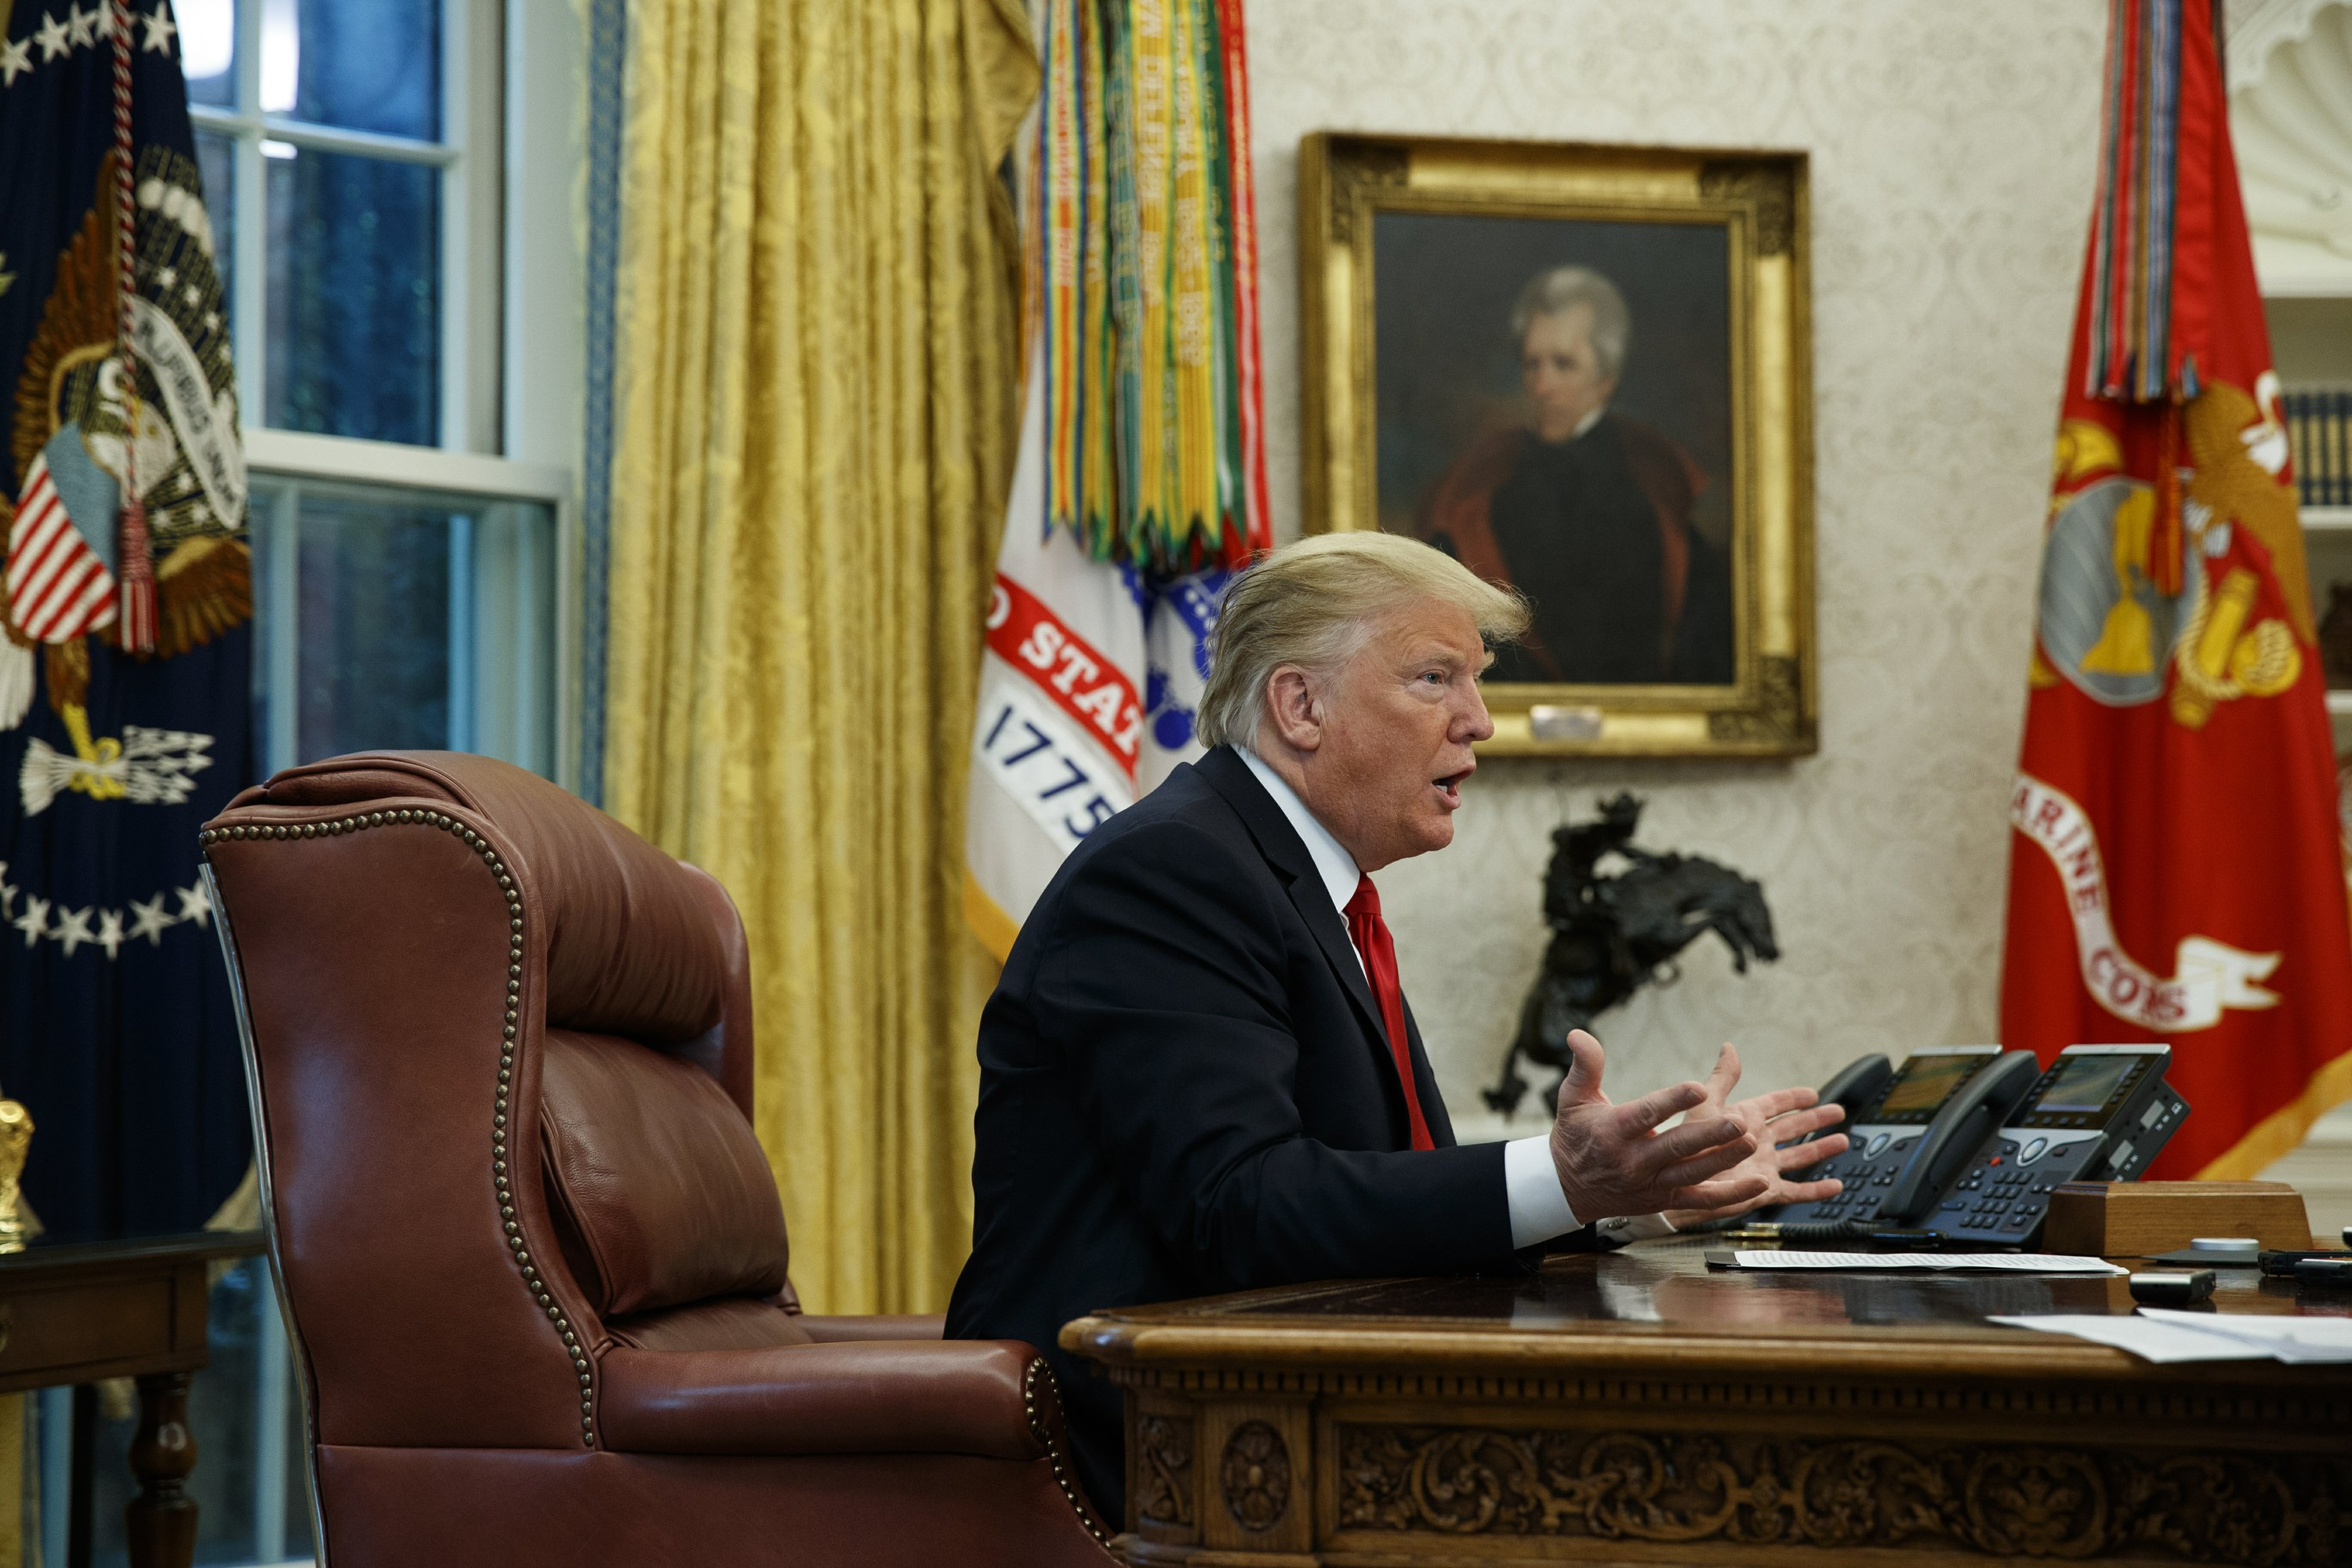 Read the transcript of AP's interview with President Trump